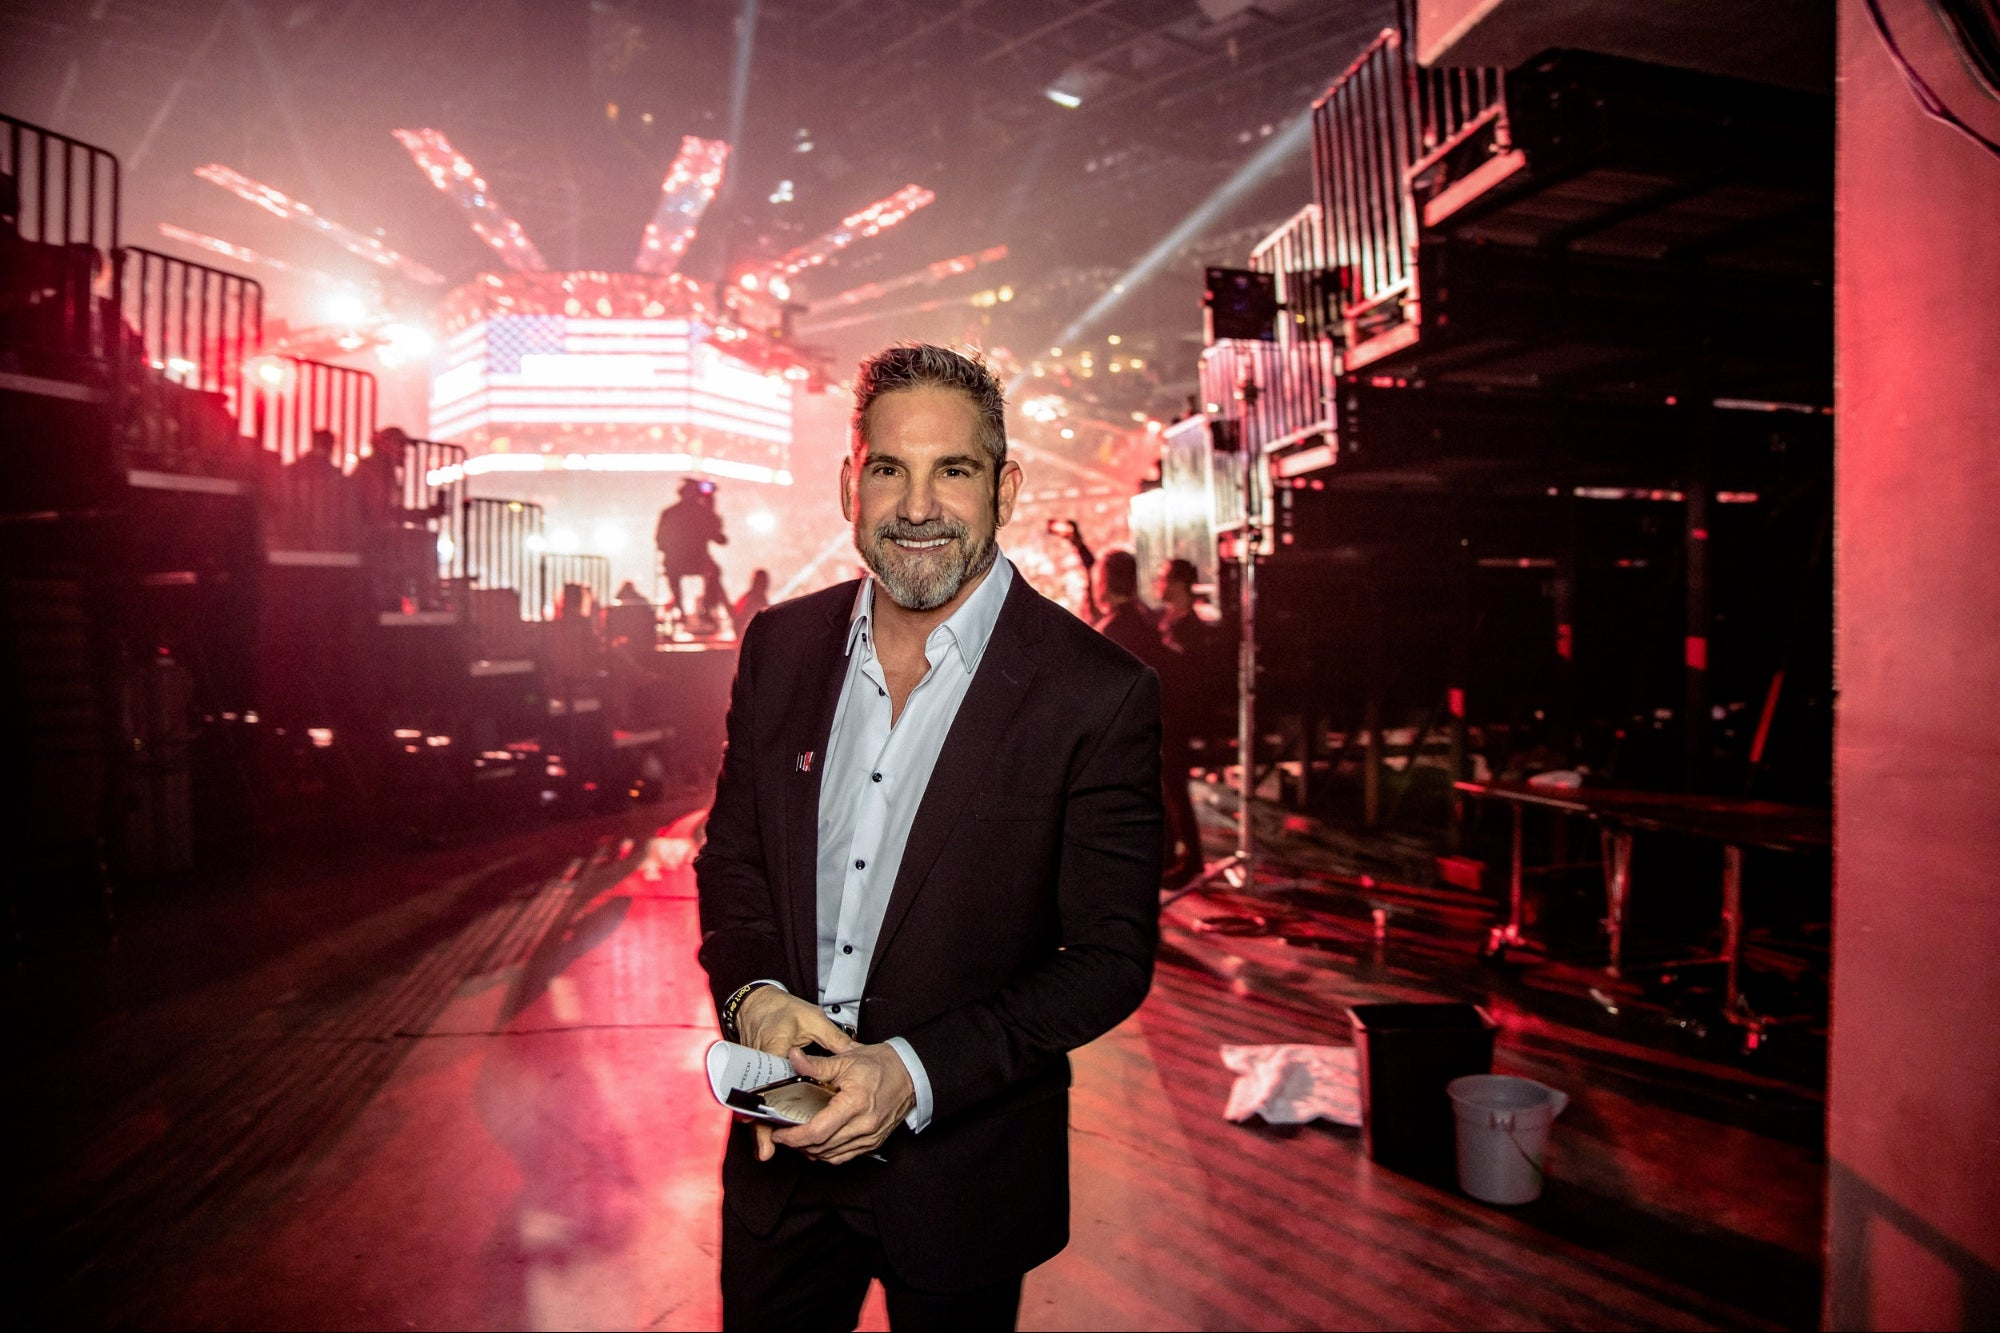 Grant Cardone: 'Why Try to Make $1 Million When You Can Make $10 Million?'